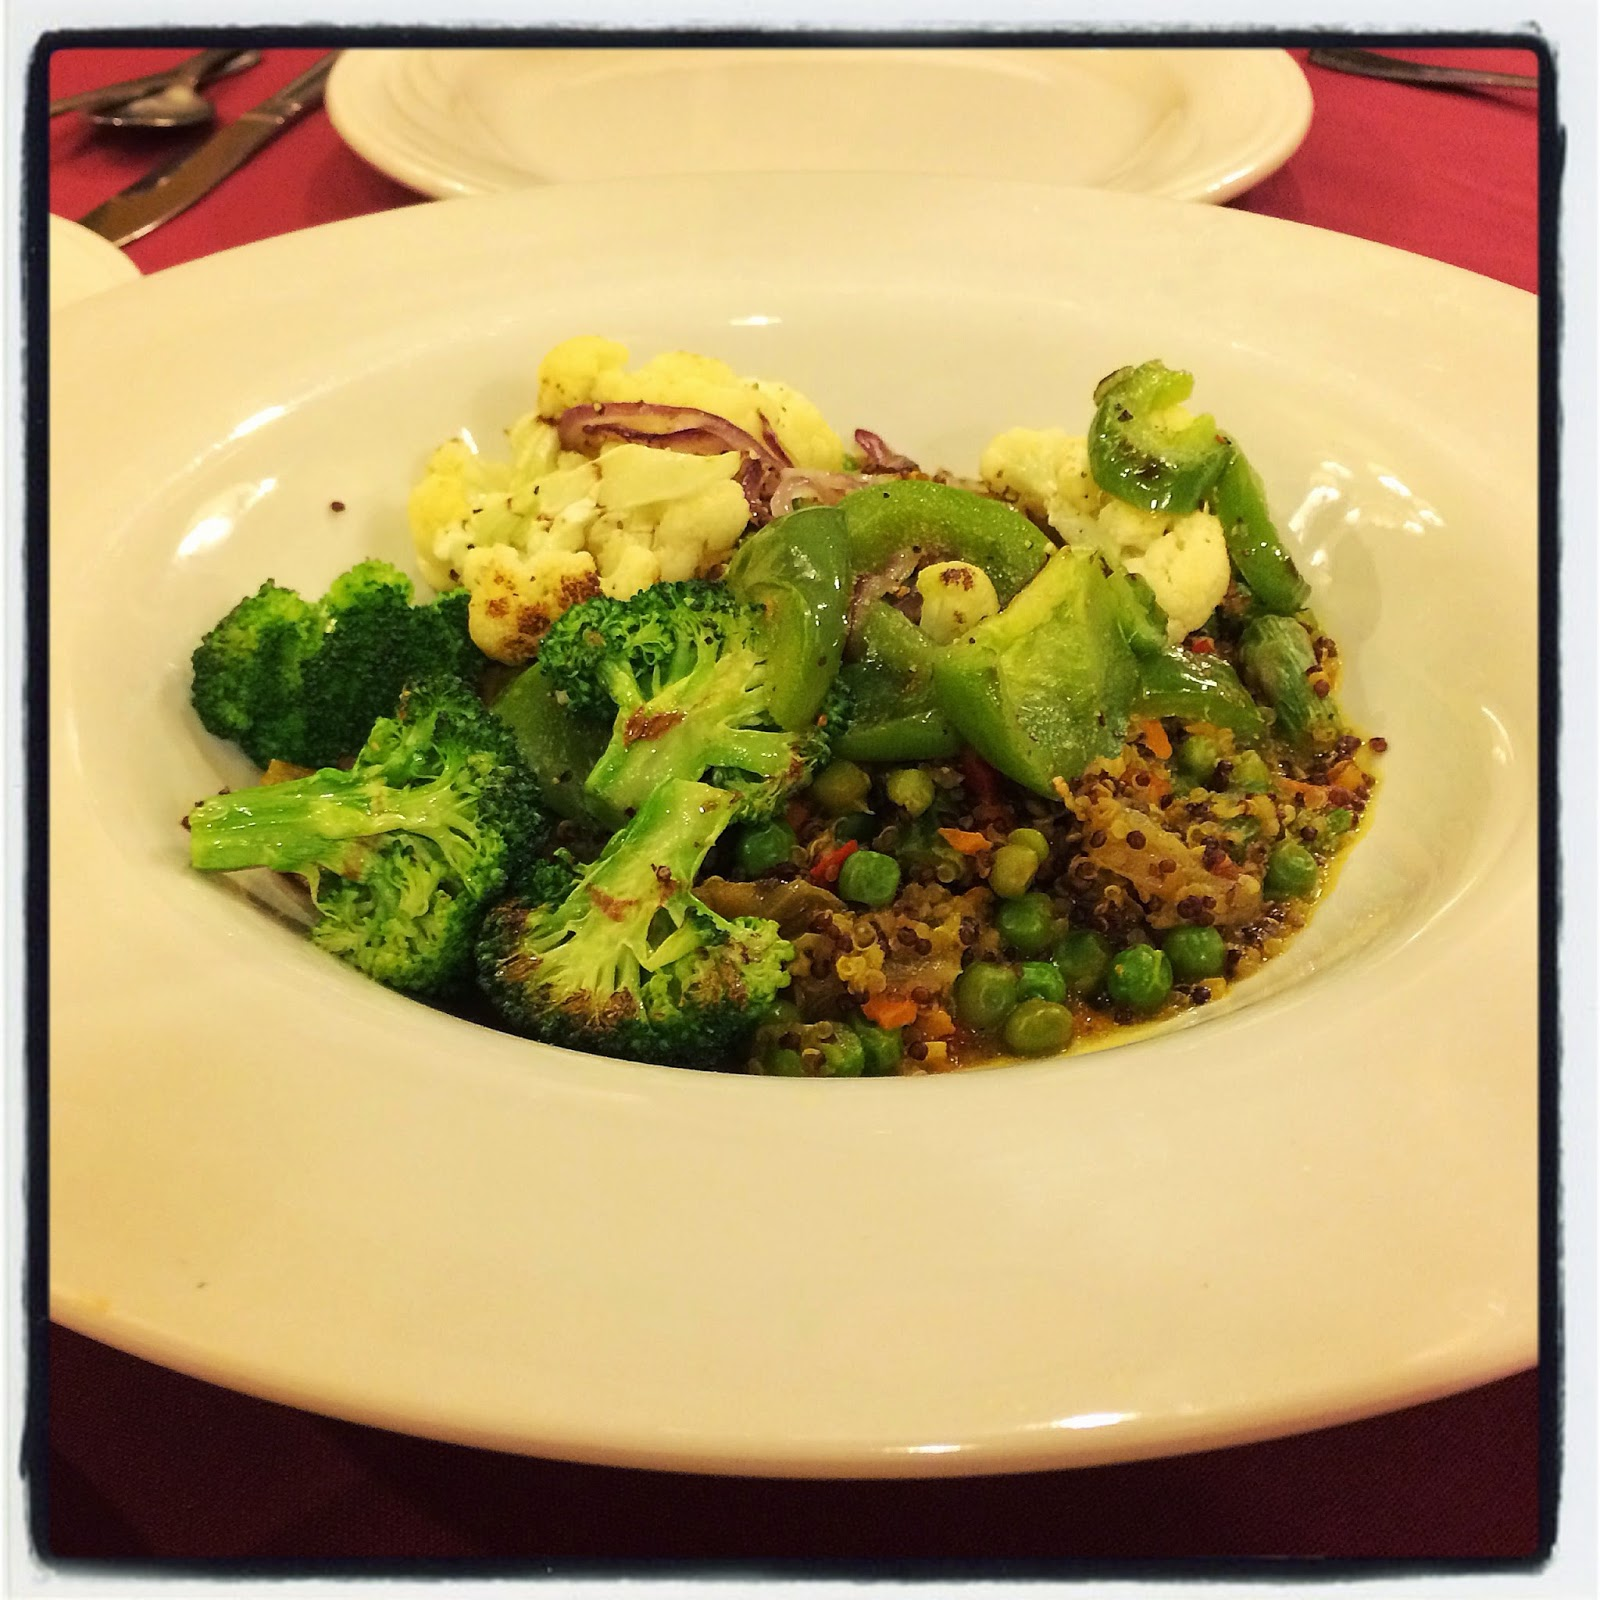 Vegetarian Vegan Quinoa Vegetable Stir Fry at The Bavarian Inn Restaurant Frankenmuth, Michigan Veg Food Options